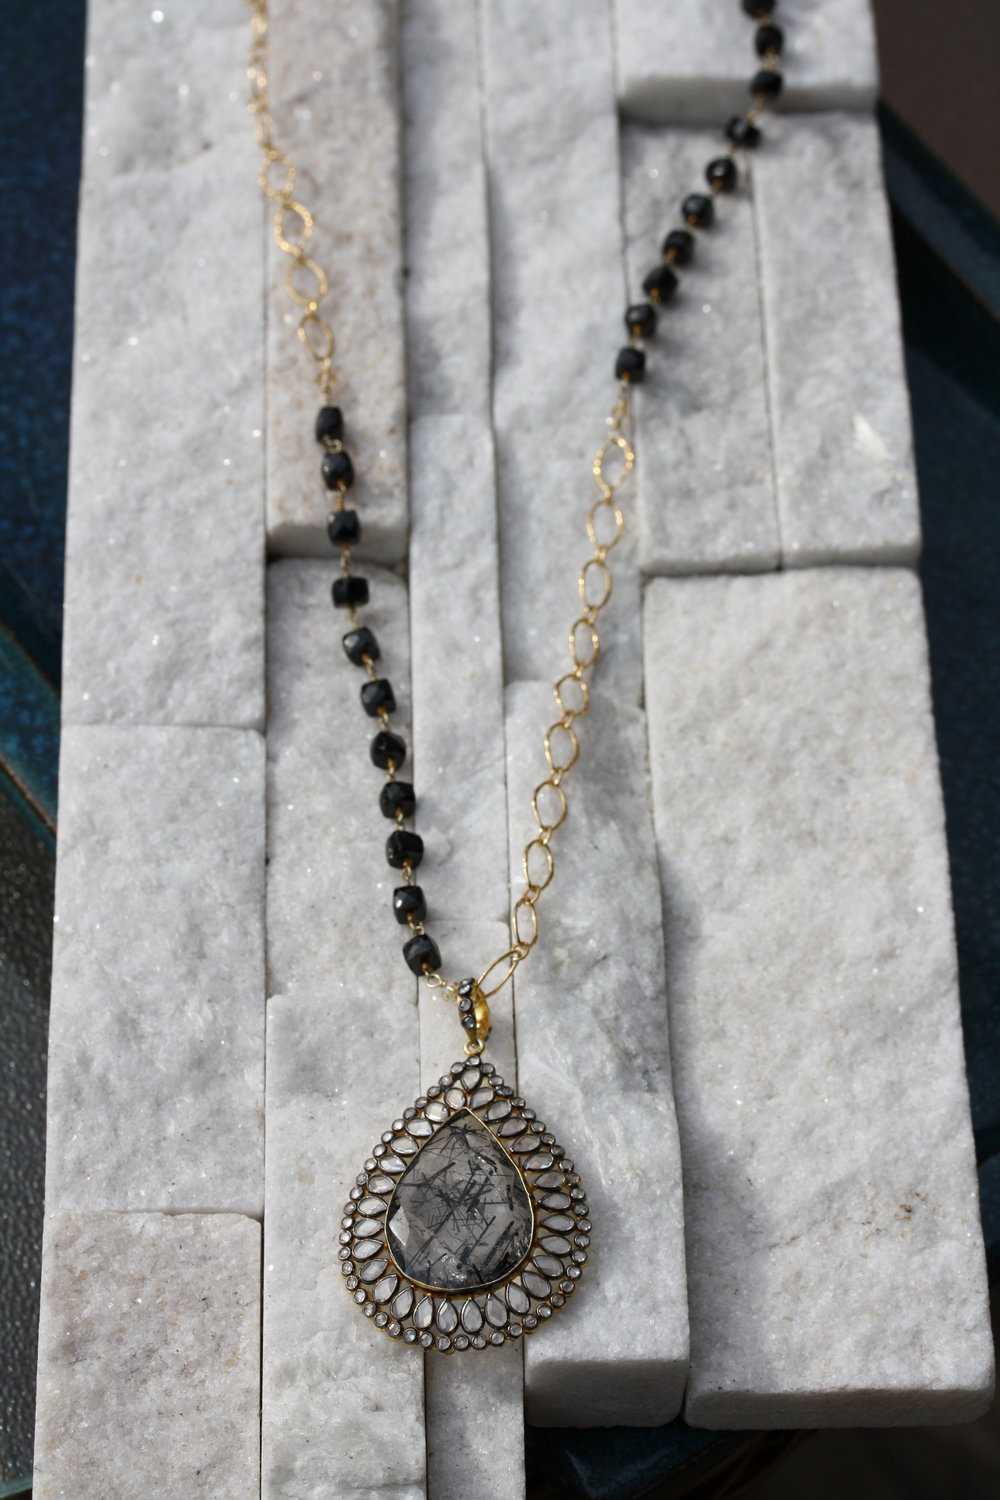 Black Spinel Large Half Beaded Chain with Tourmalated Quartz Doublet Pendant_01 copy.JPG